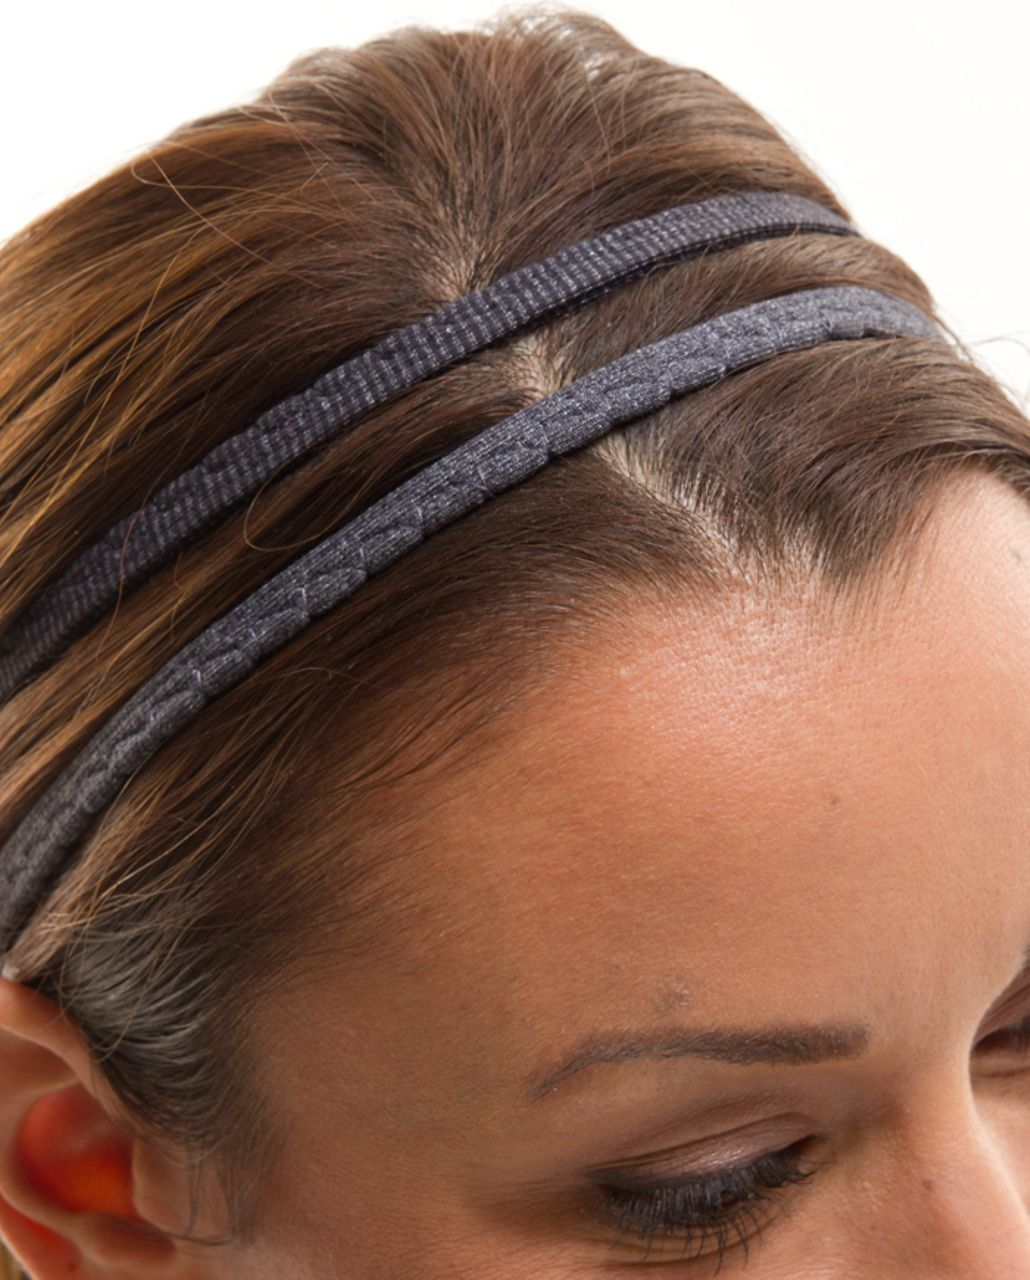 Lululemon DANCE! Headband - Deep Coal Heathered Coal Wee Stripe /  Heathered Coal